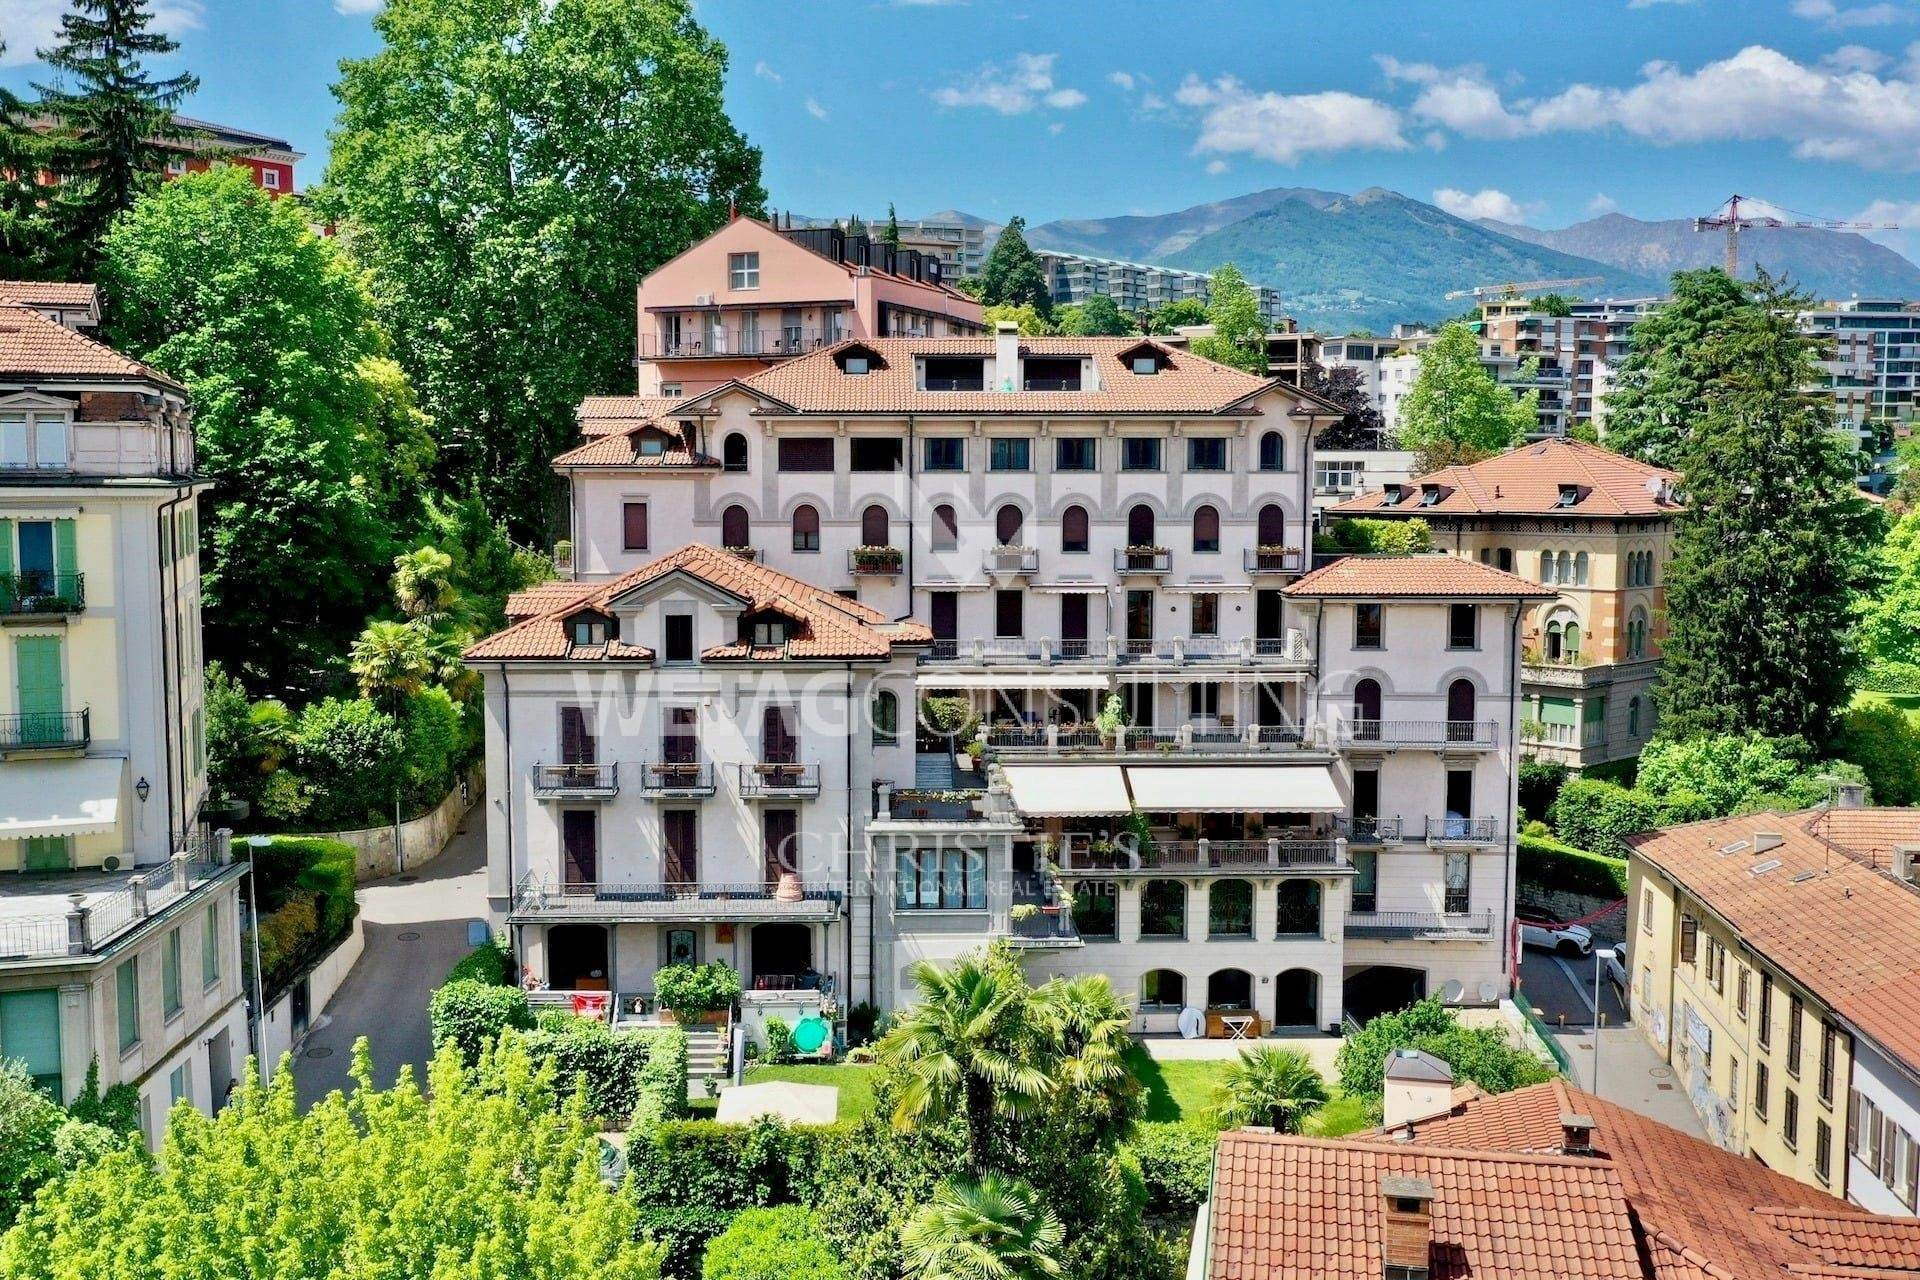 Residence/Apartment for Sale at Apartment in the historic center of Lugano with wonderful lake view for sale Lugano, Ticino,6900 Switzerland